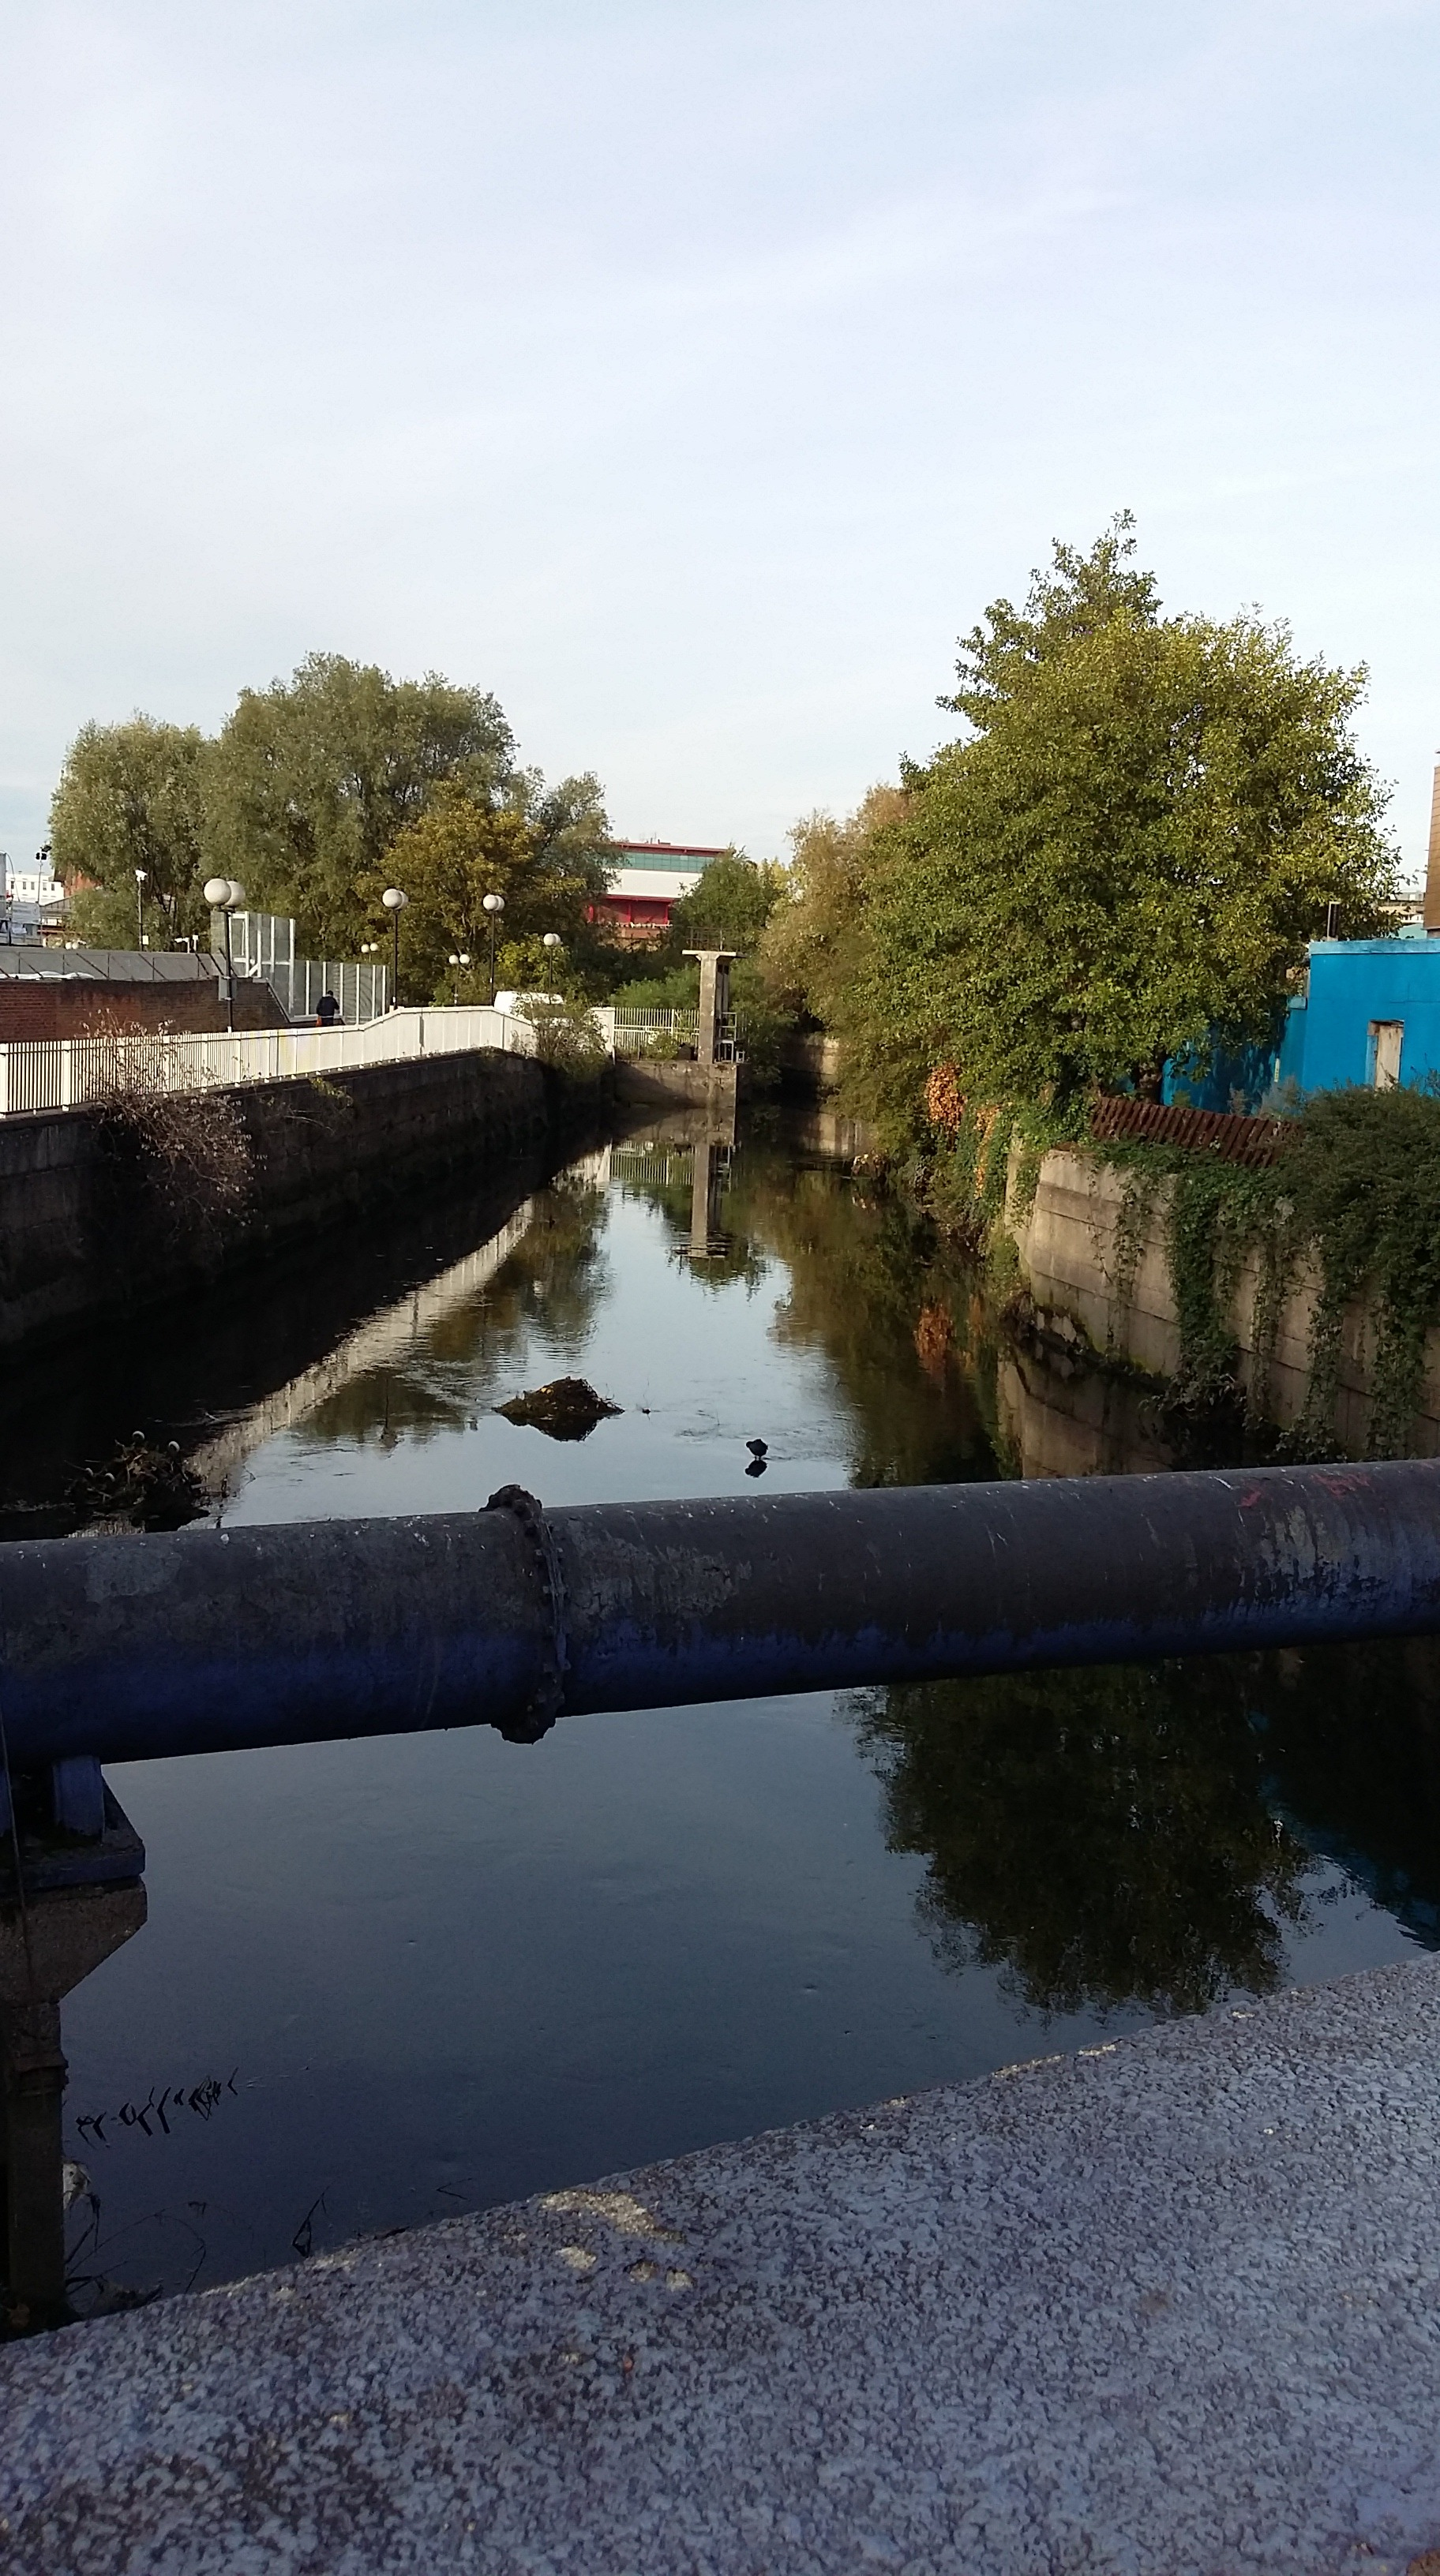 The Wandle in Wandsworth